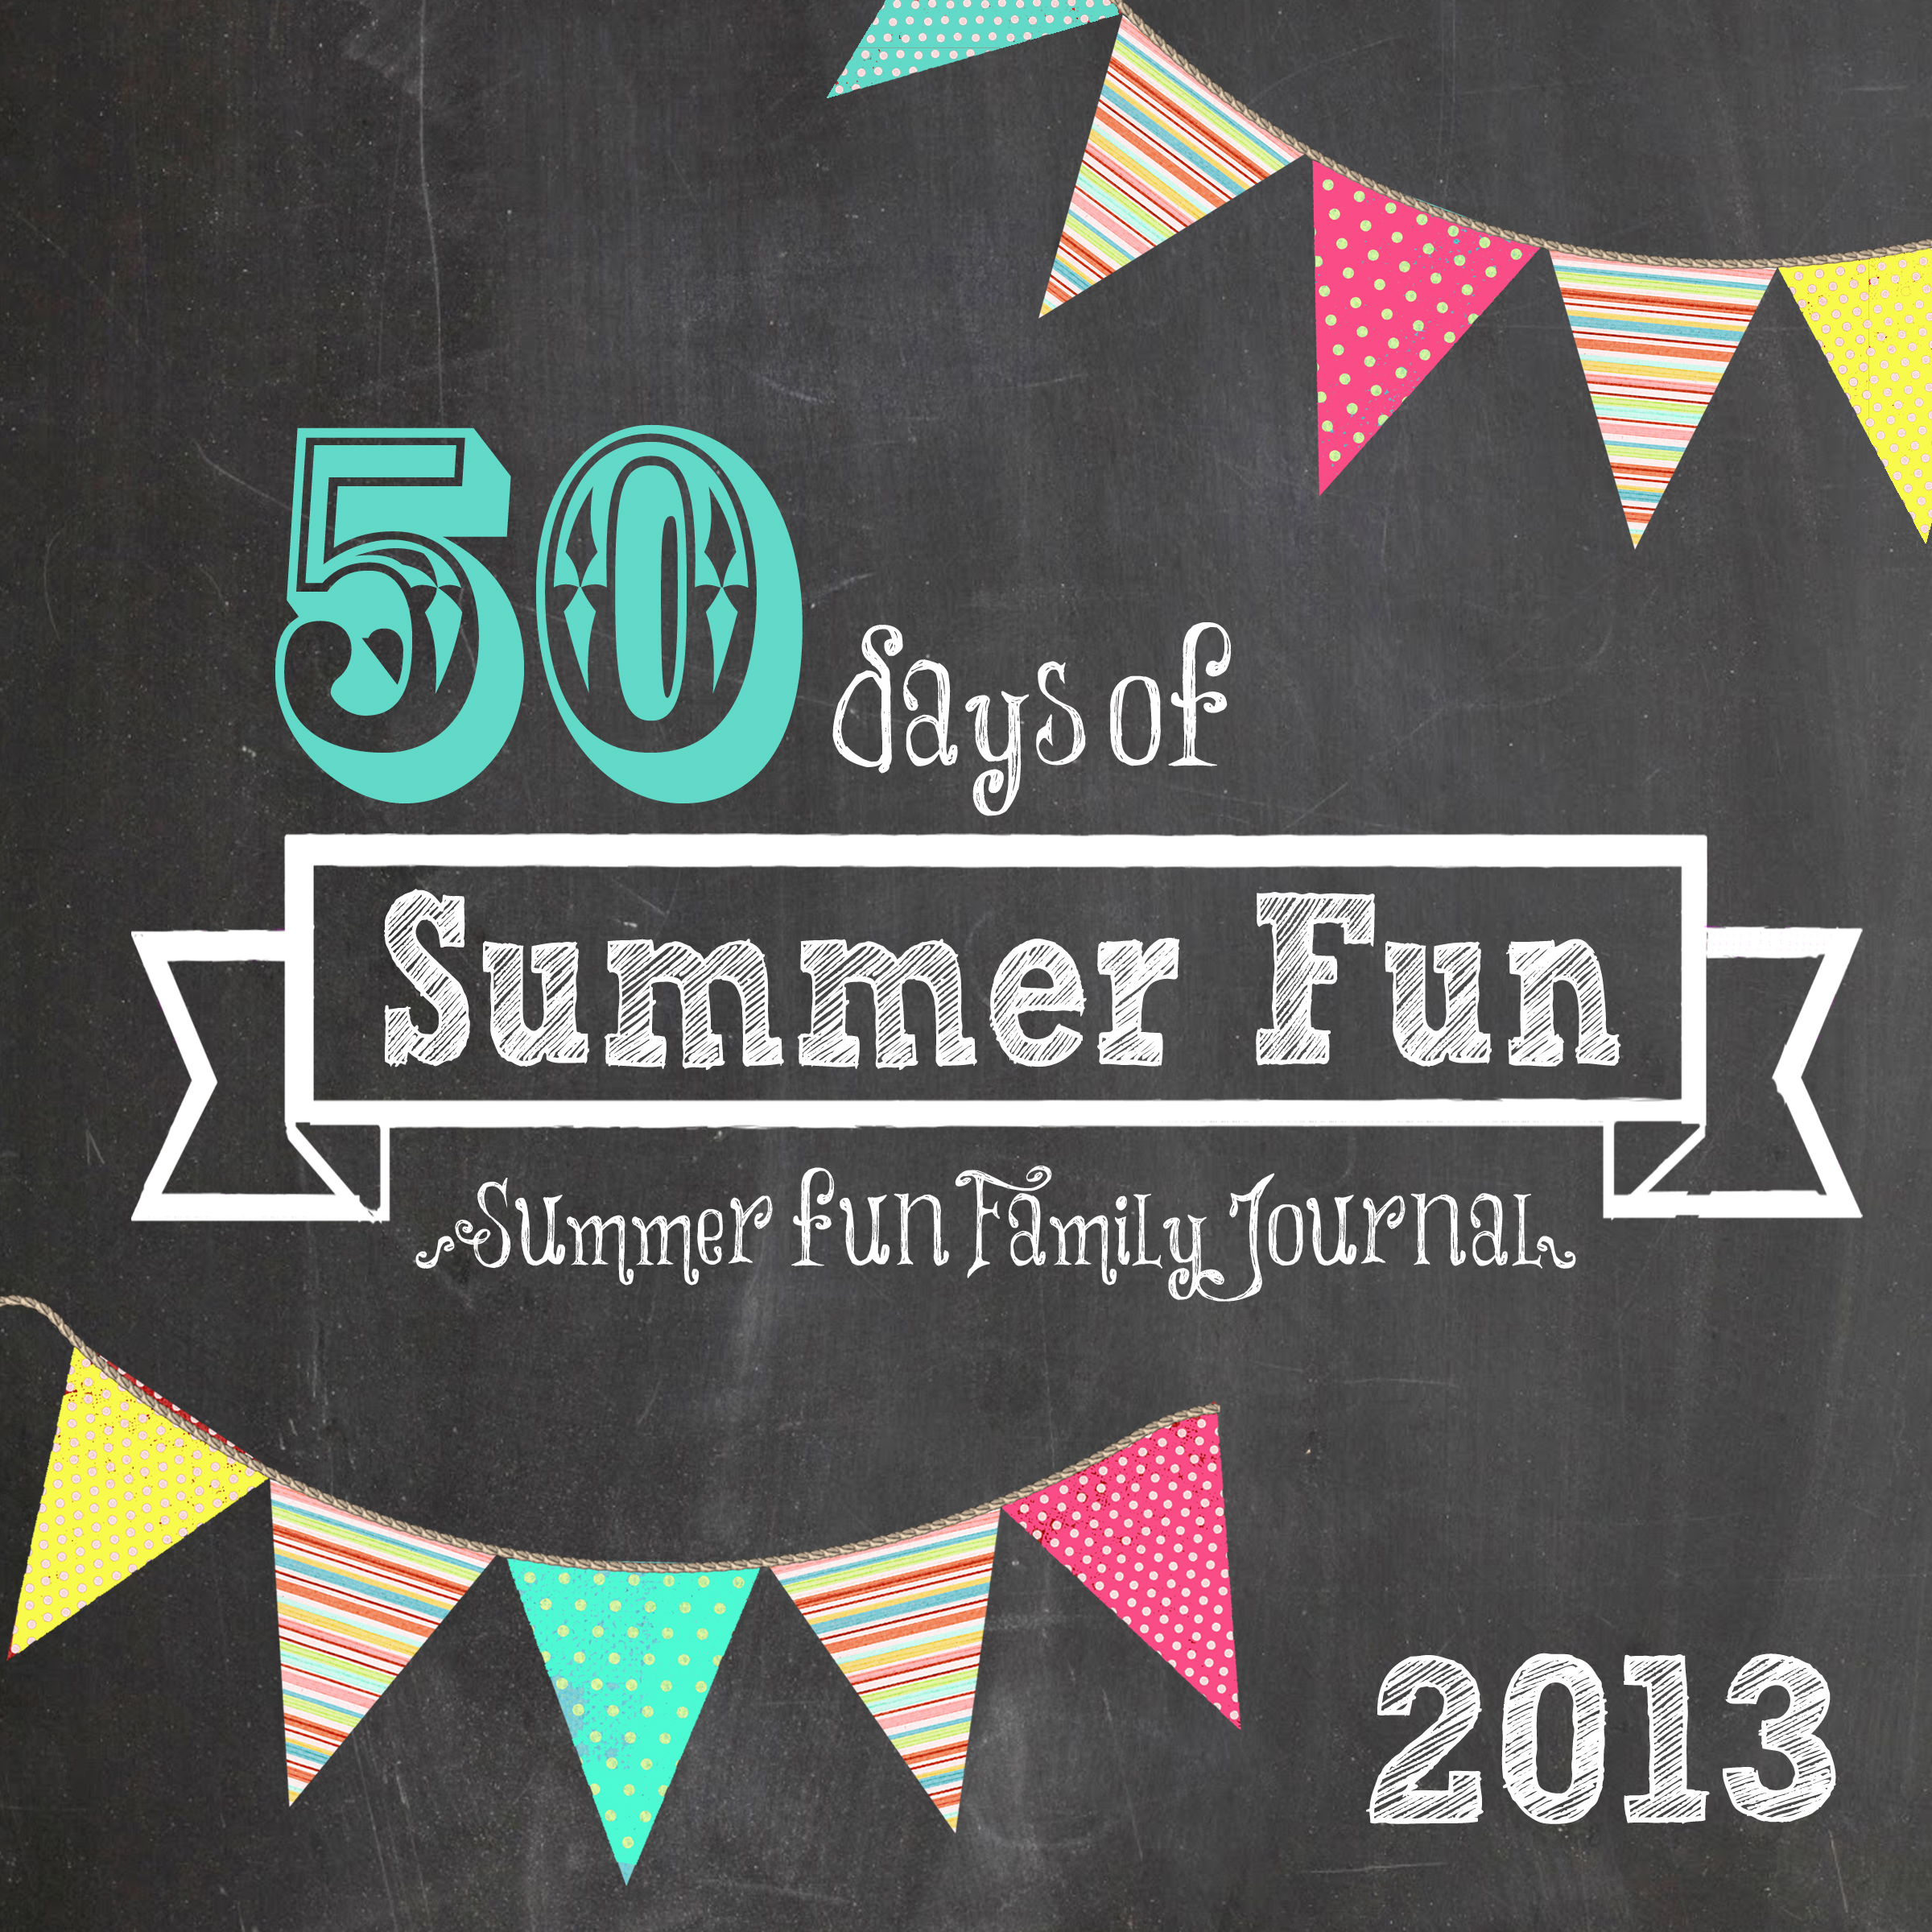 summer fun journal cover 2013